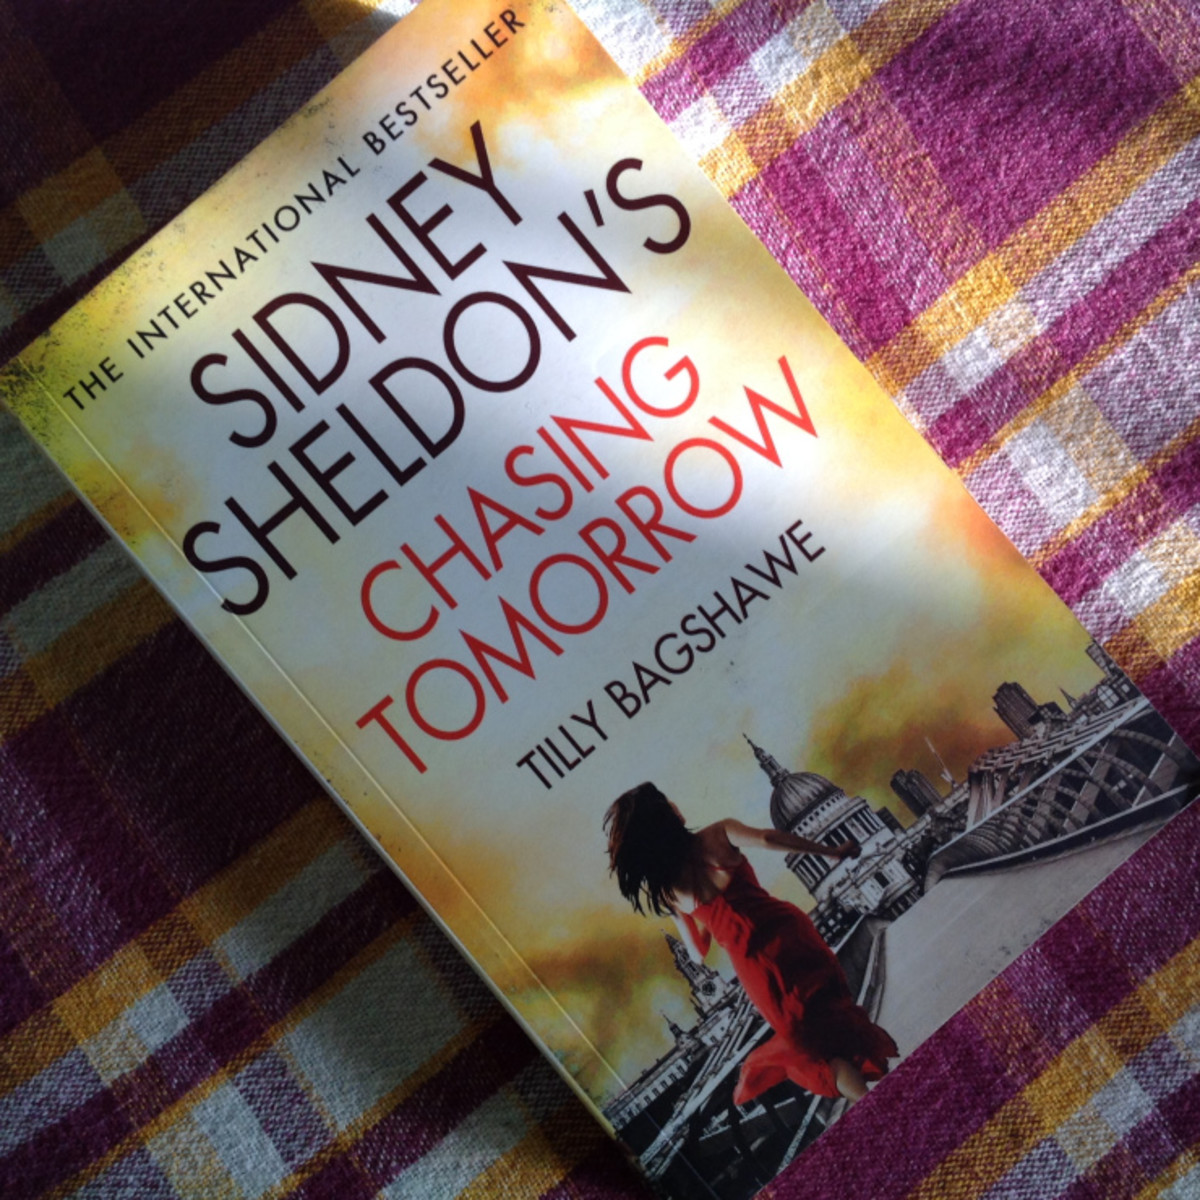 book-review-sidney-sheldons-chasing-tomorrow